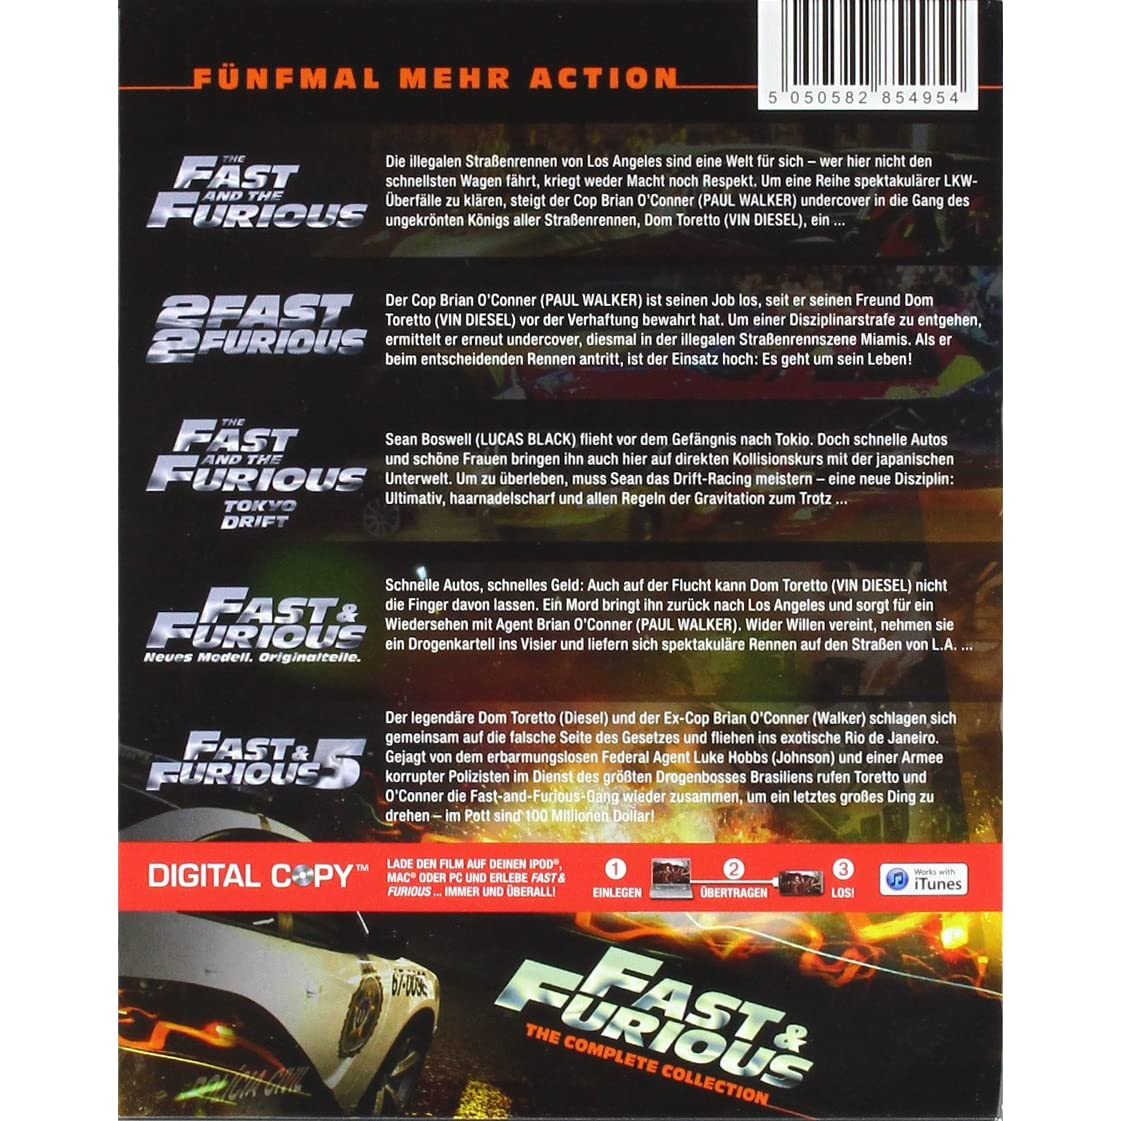 fast furious 1 5 the collection blu ray vin diesel. Black Bedroom Furniture Sets. Home Design Ideas